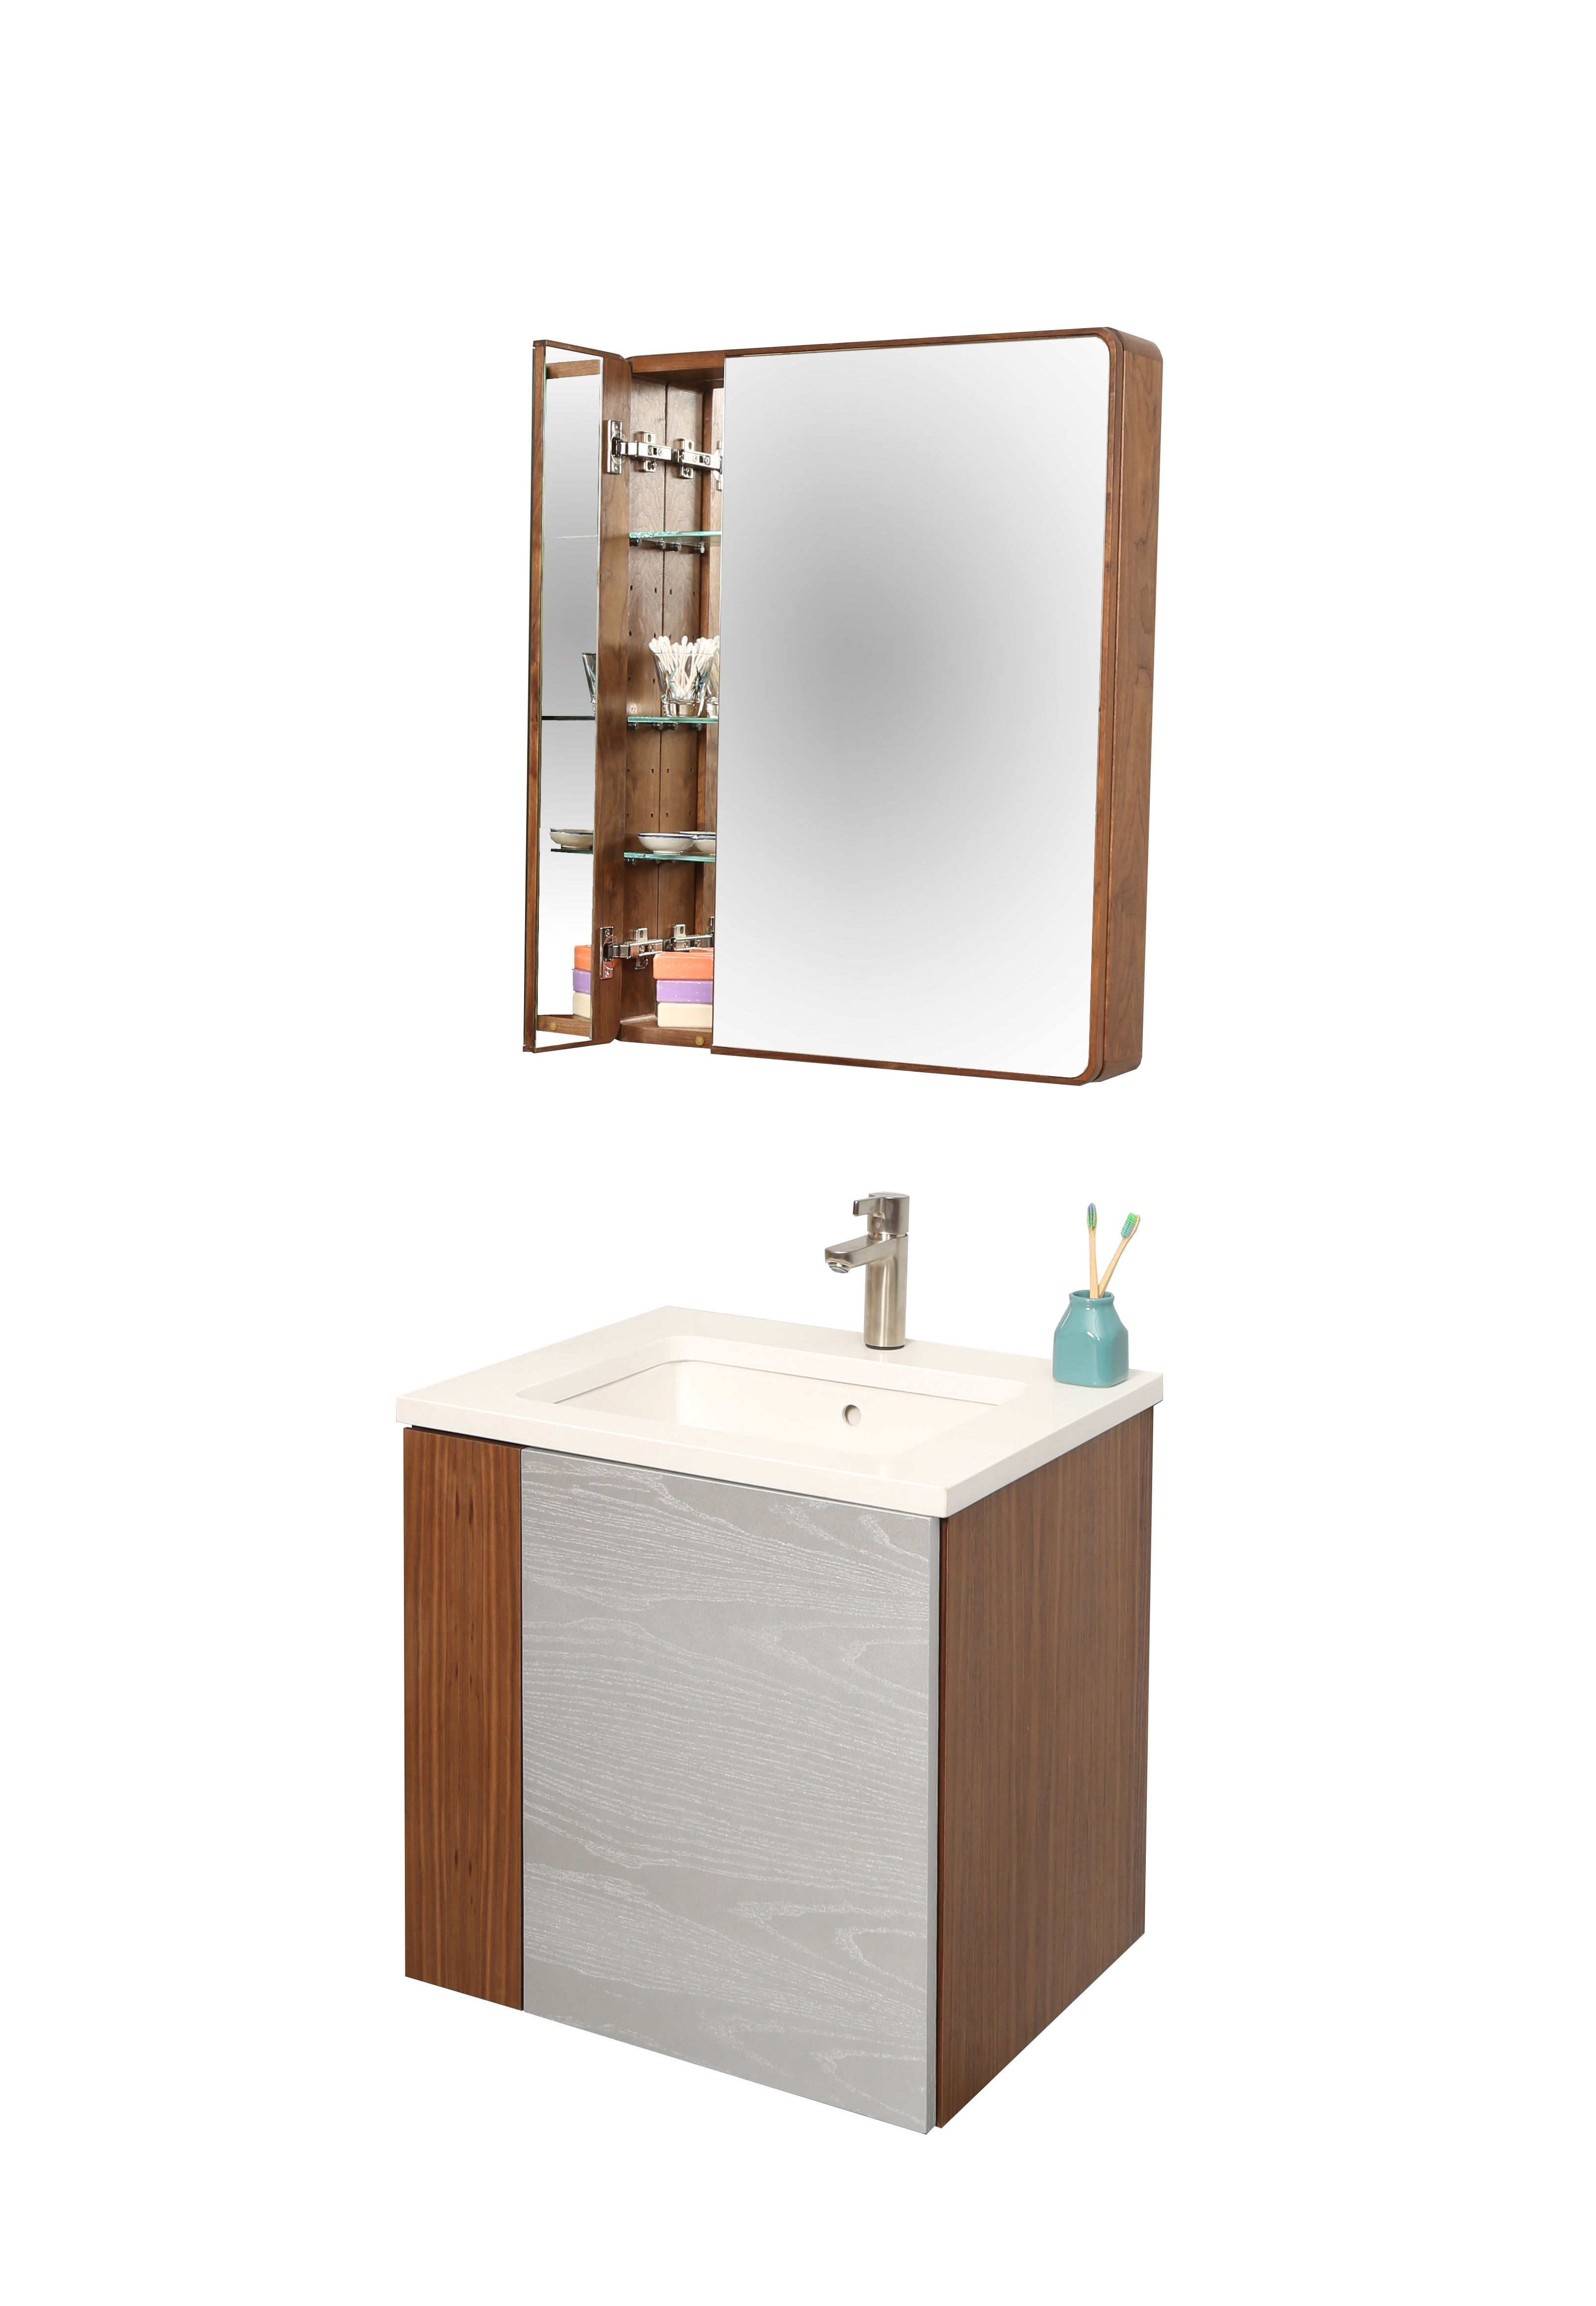 Wall*nut Medicine Cabinet And S Wall*nut Vanity S With #Duravit Sink